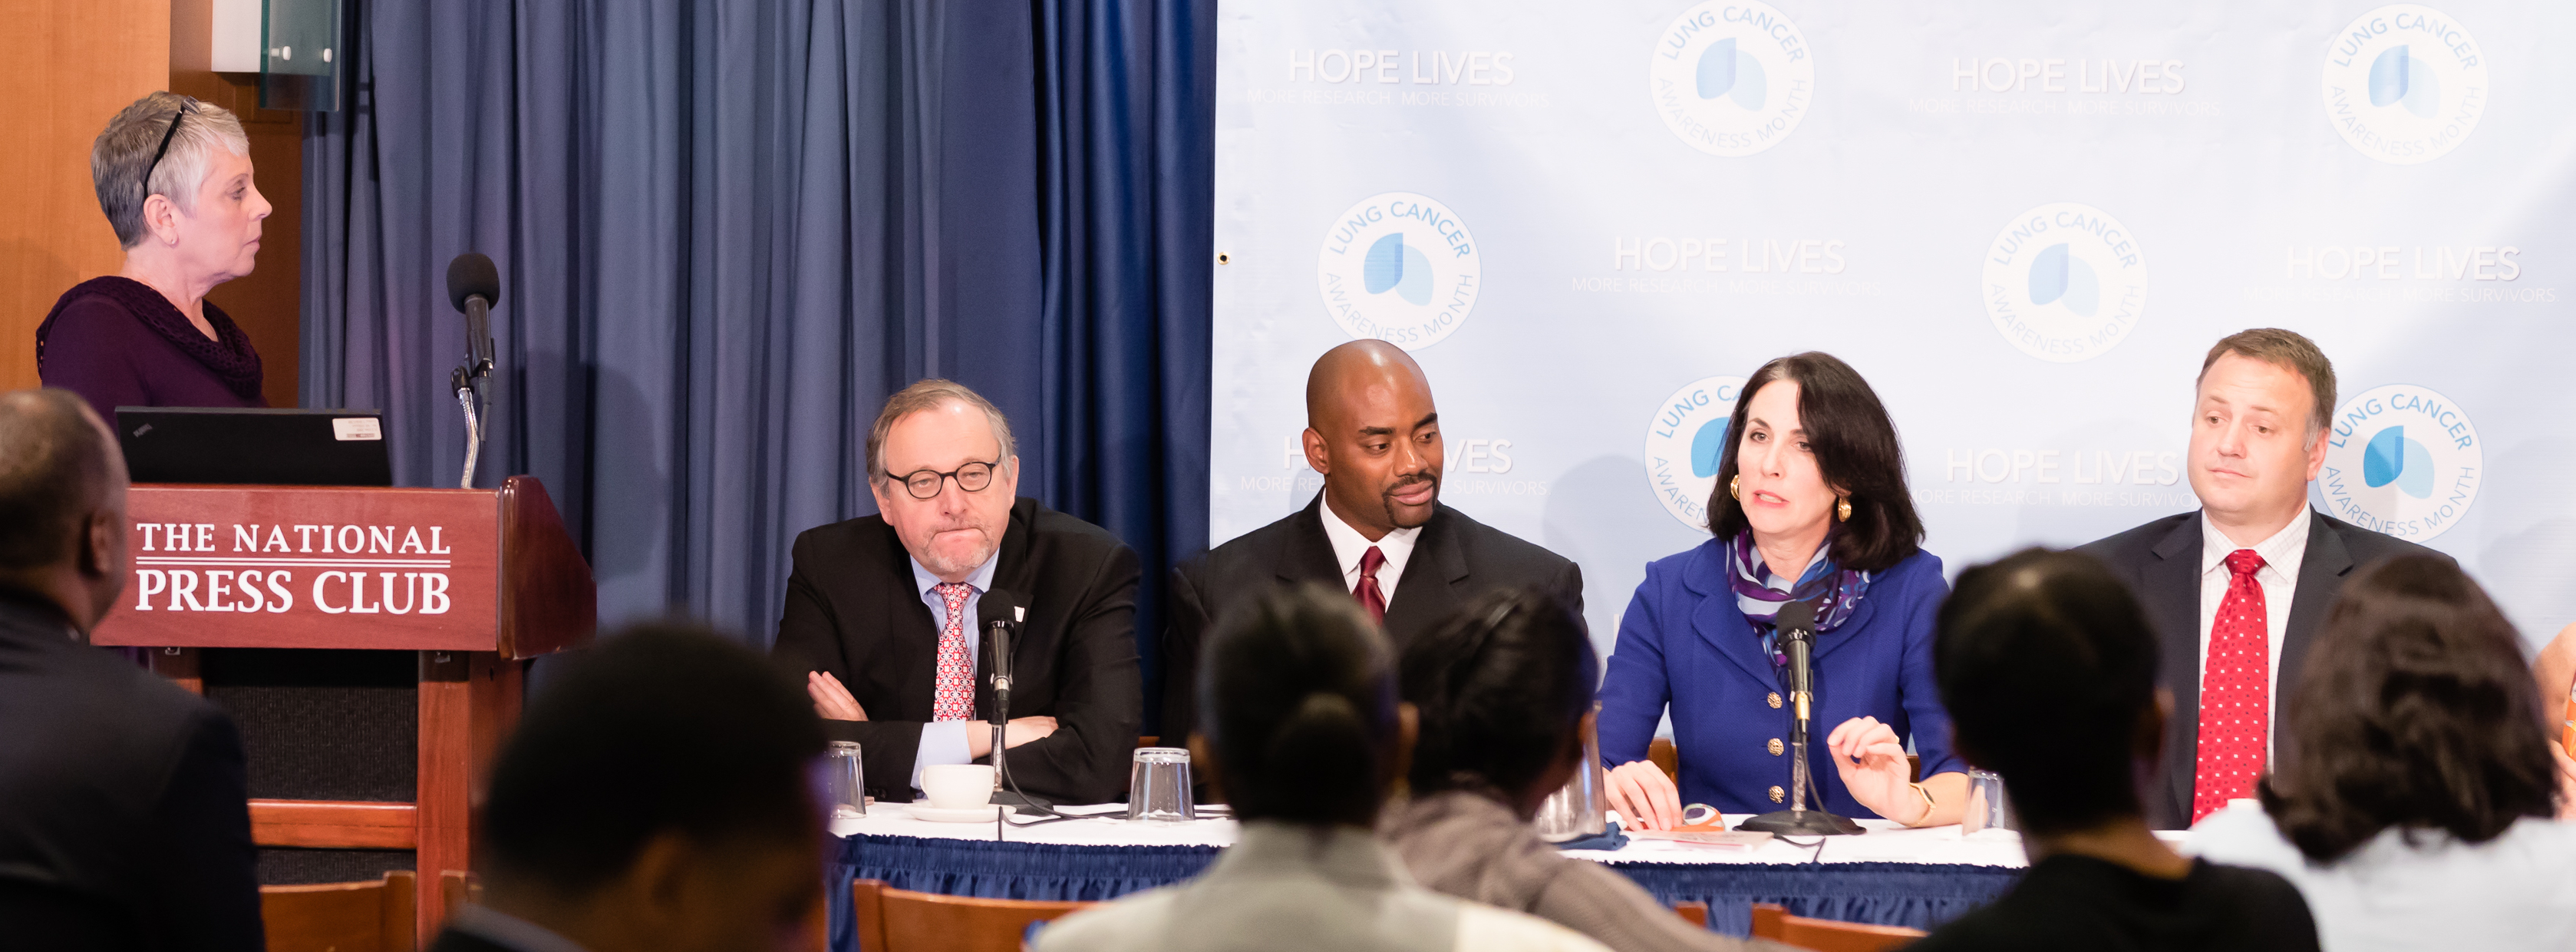 2016 NPC Lung Cancer Press Conference